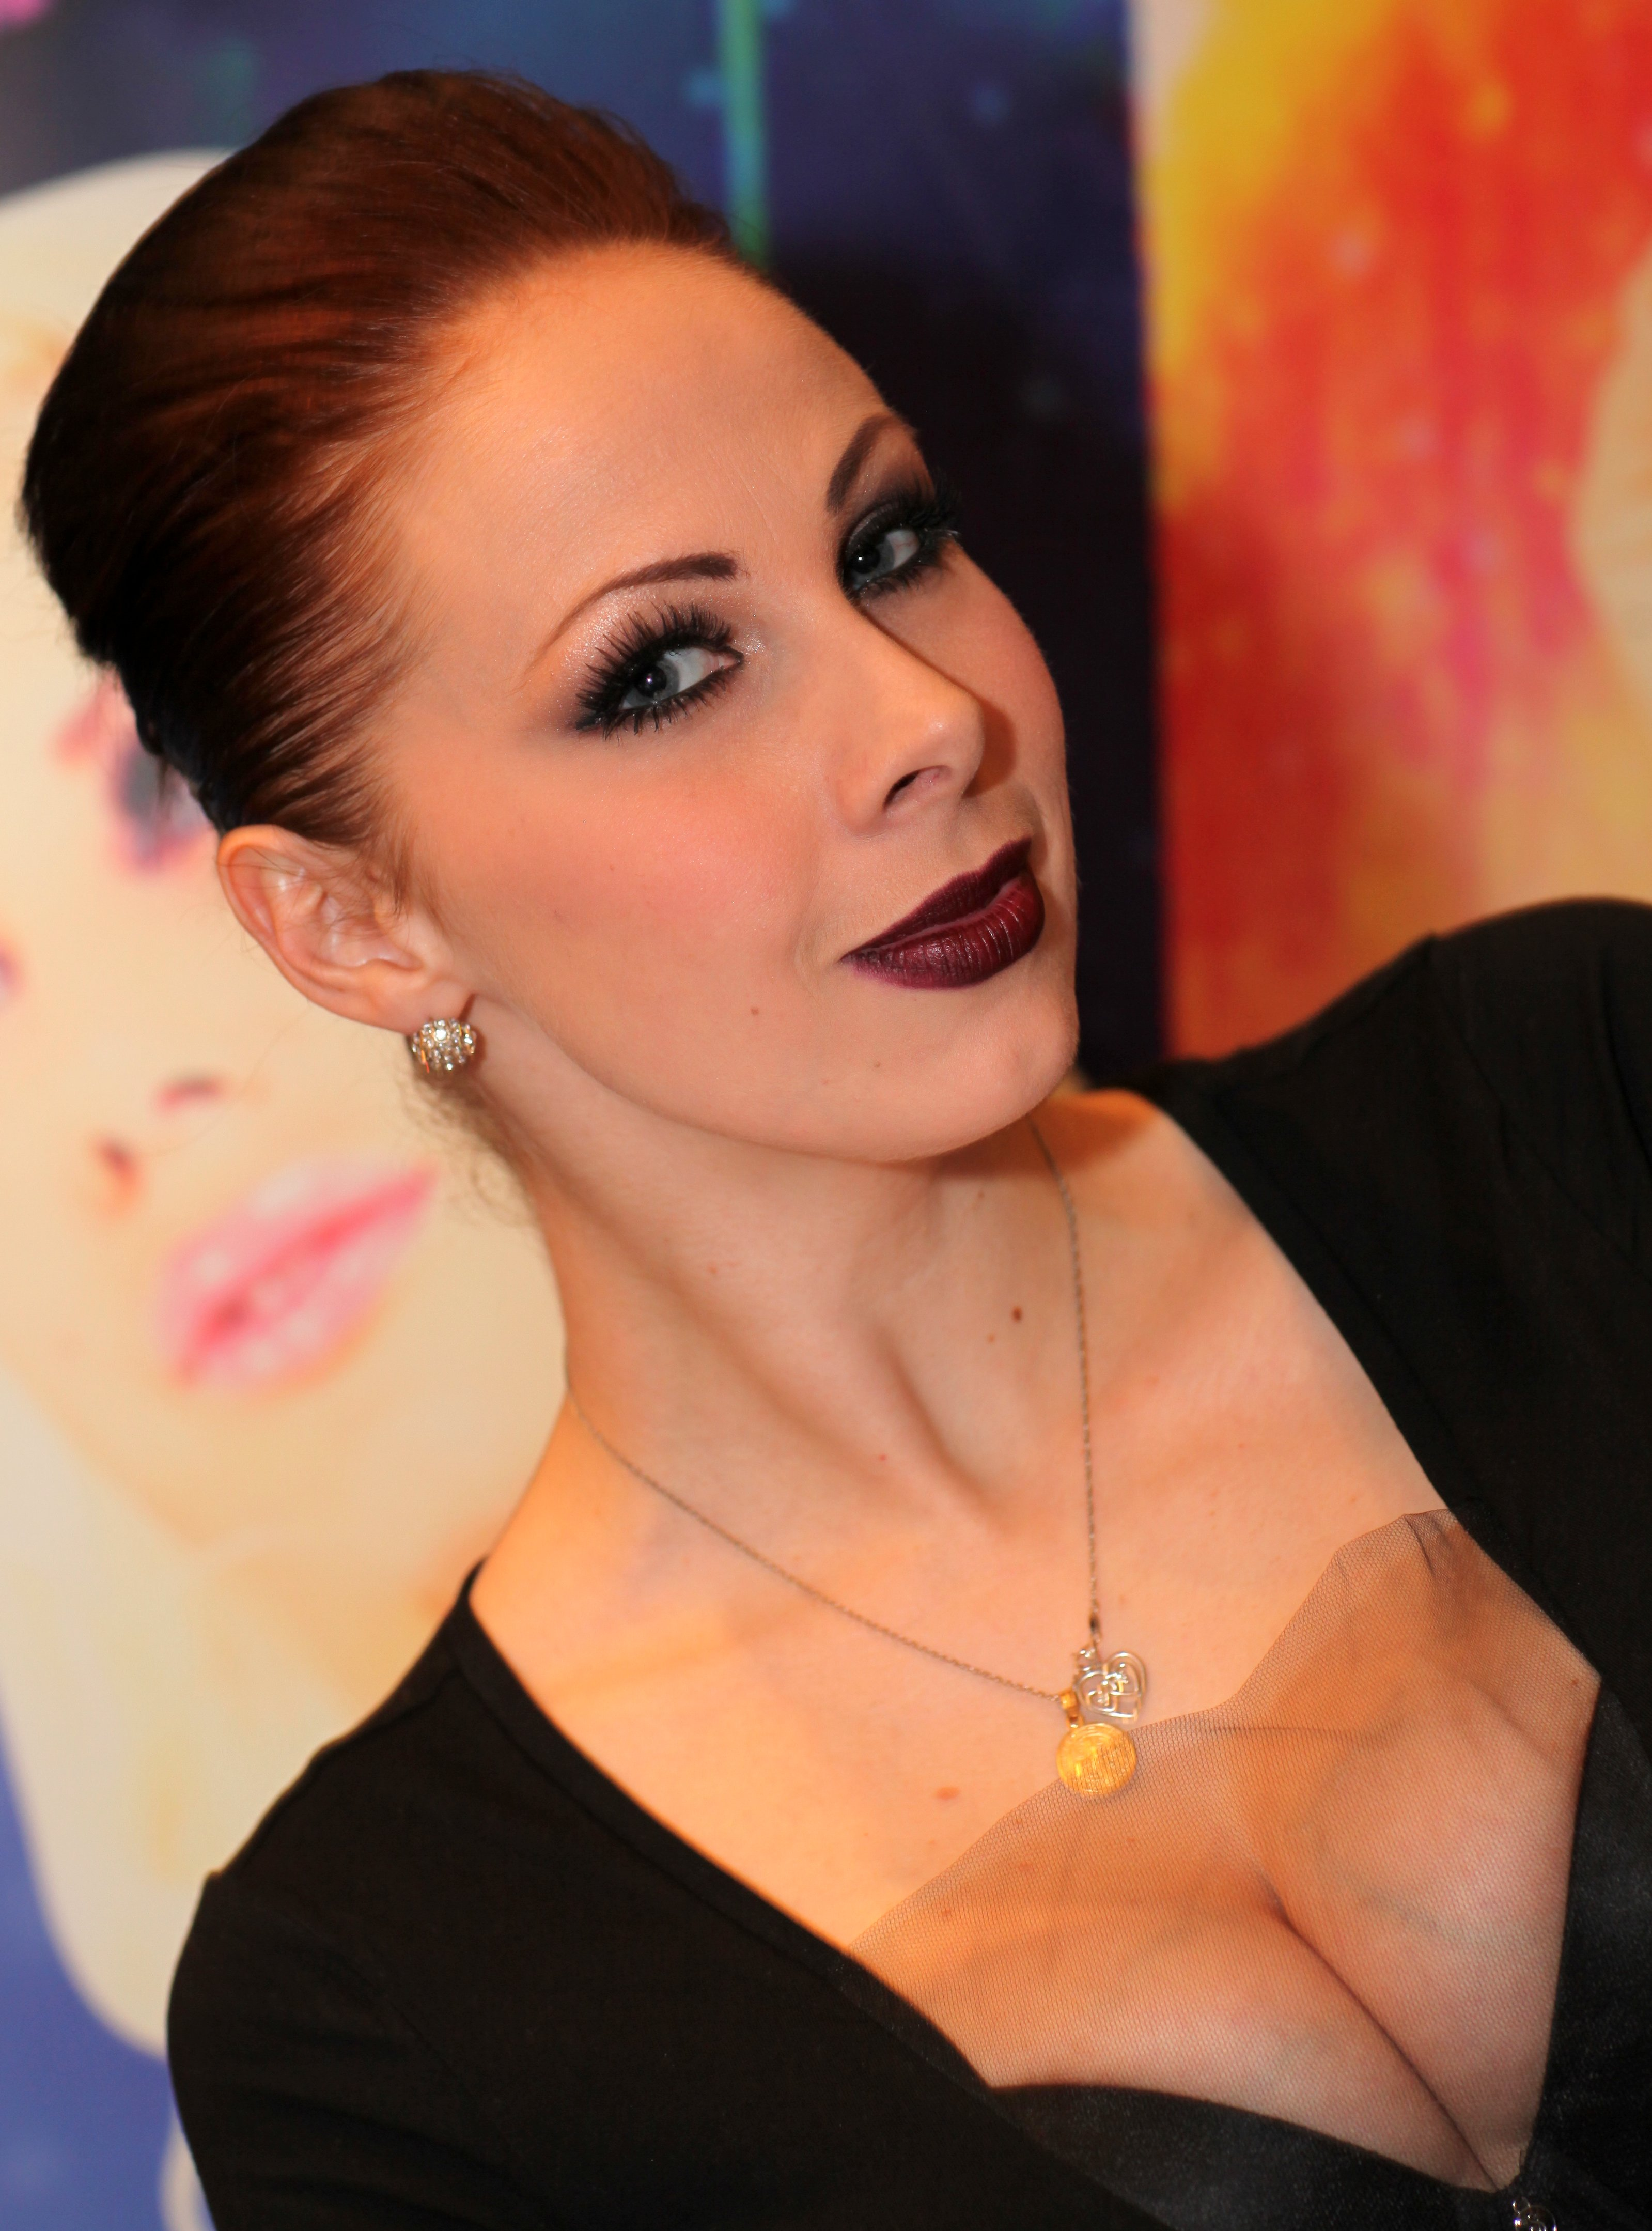 Gianna_Michaels_AEE_2013_2